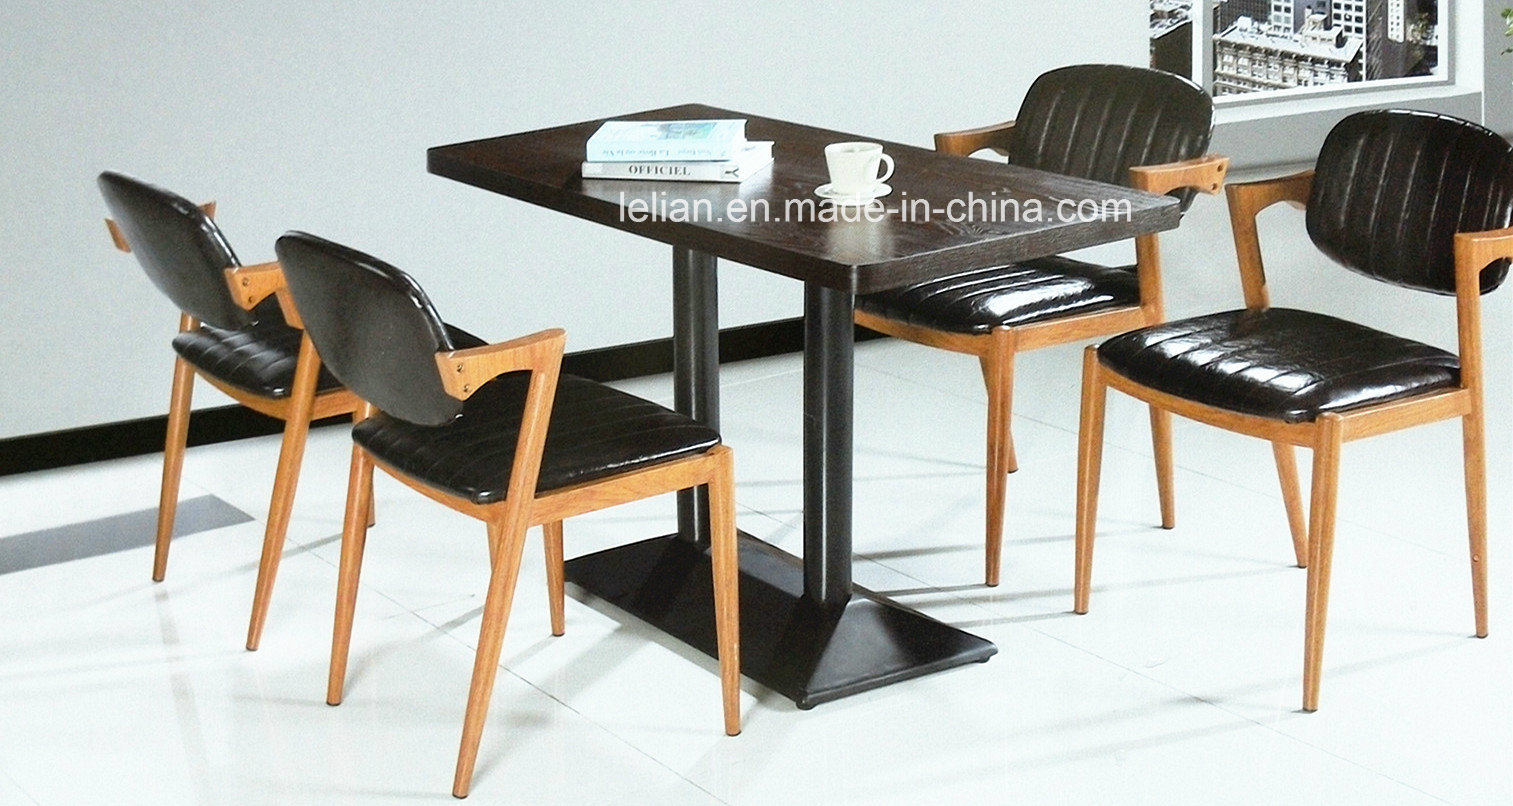 Hot Item Mdf Wooden Furniture Stackable Table And Chair Ll Wst010